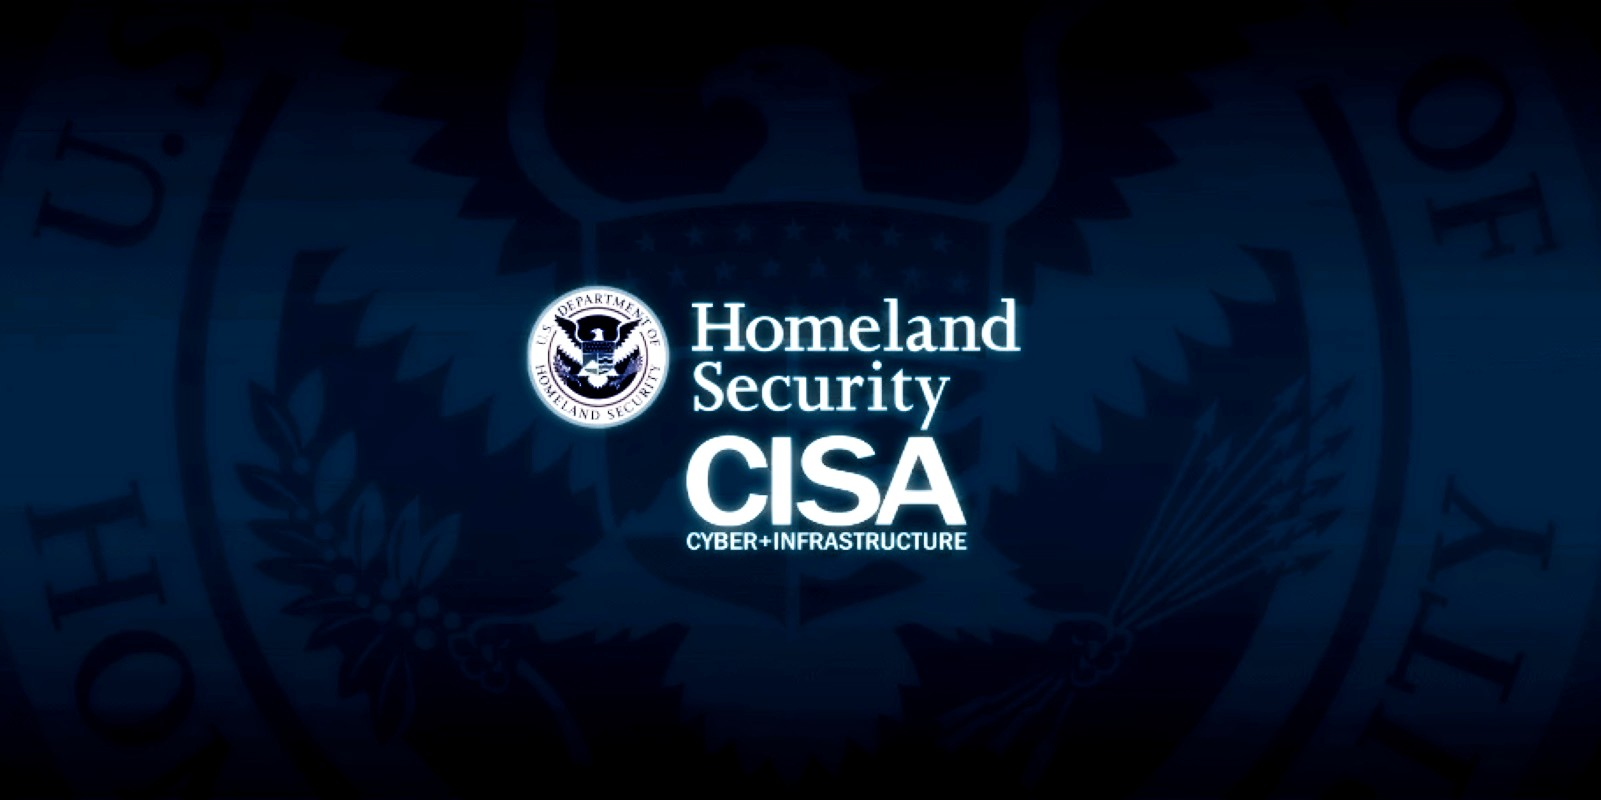 CISA releases new SolarWinds malicious activity detection tool